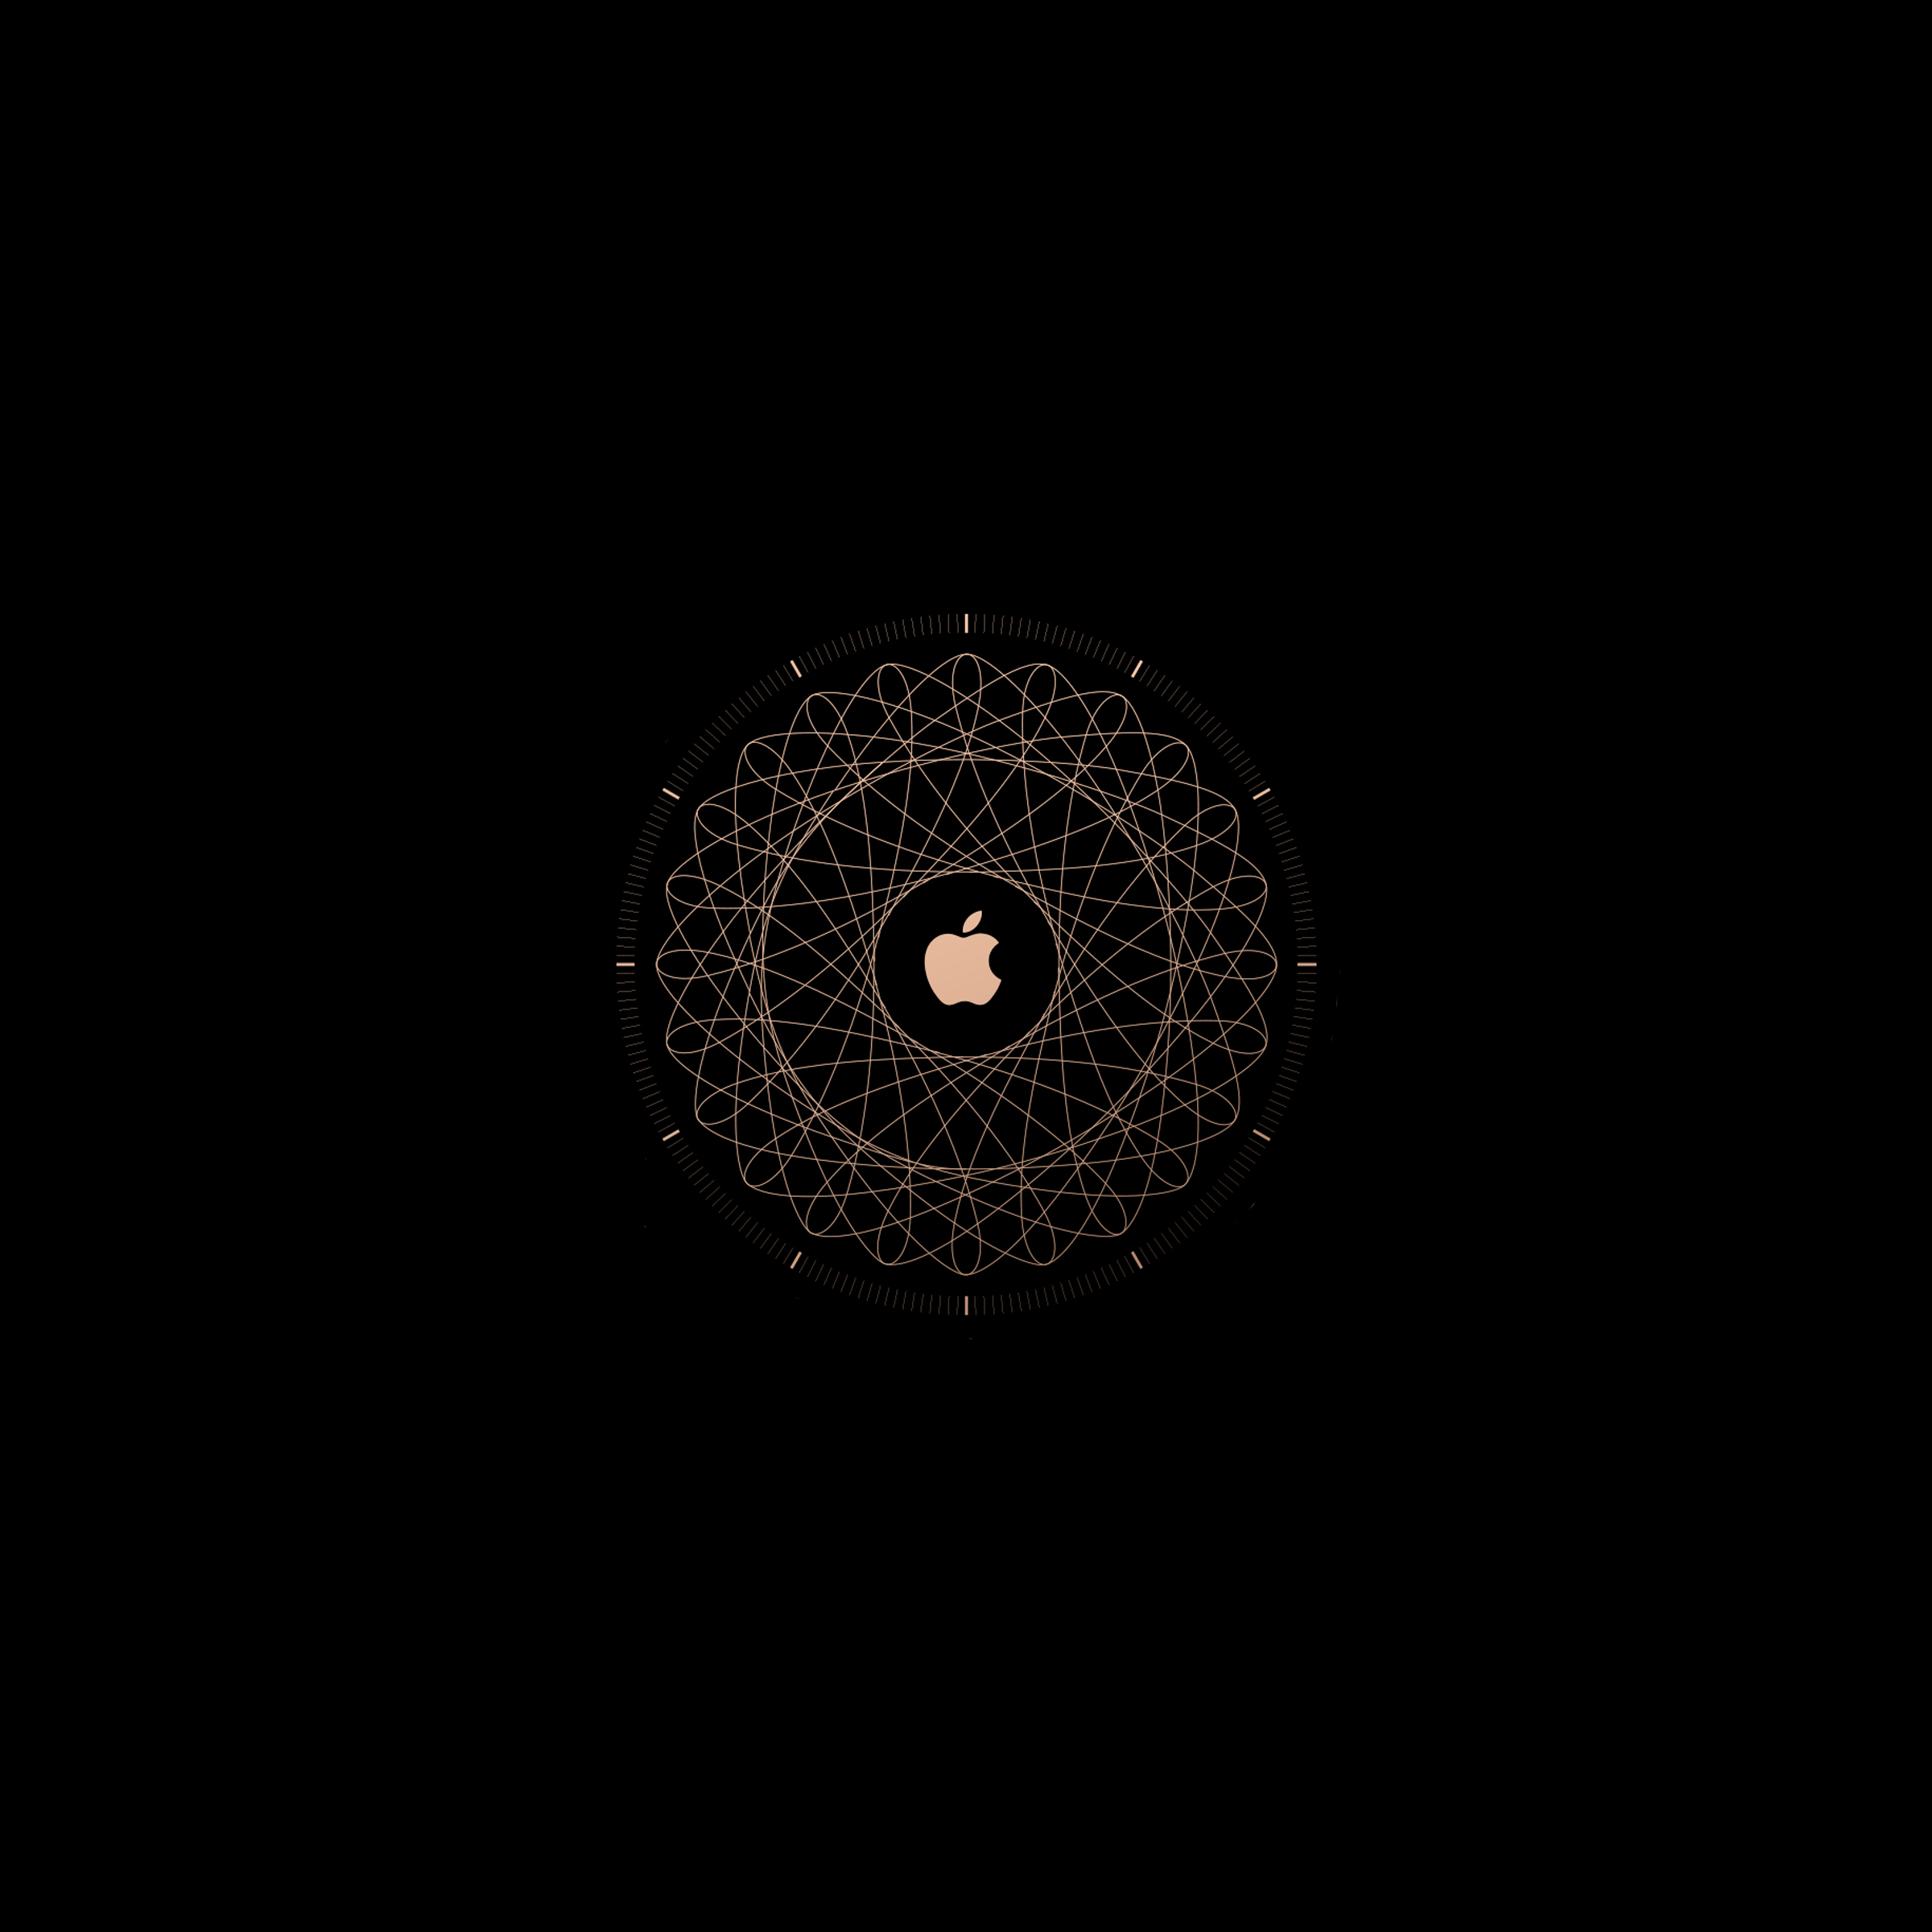 8d621bd4f49 Apple Watch wallpapers for iPhone, iPad, and desktop